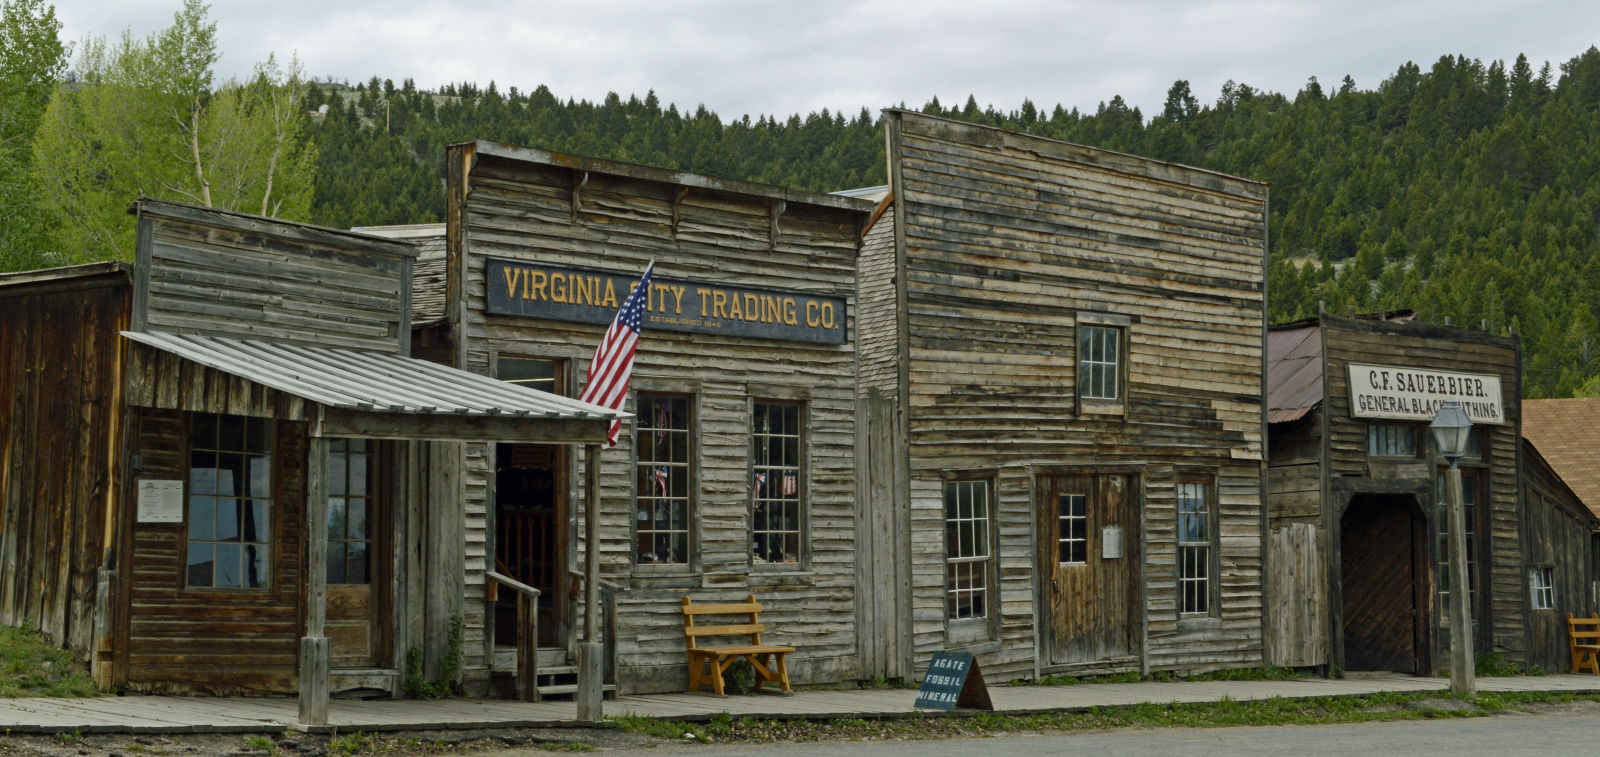 13 Of The Spookiest Ghost Towns In America Most Haunted